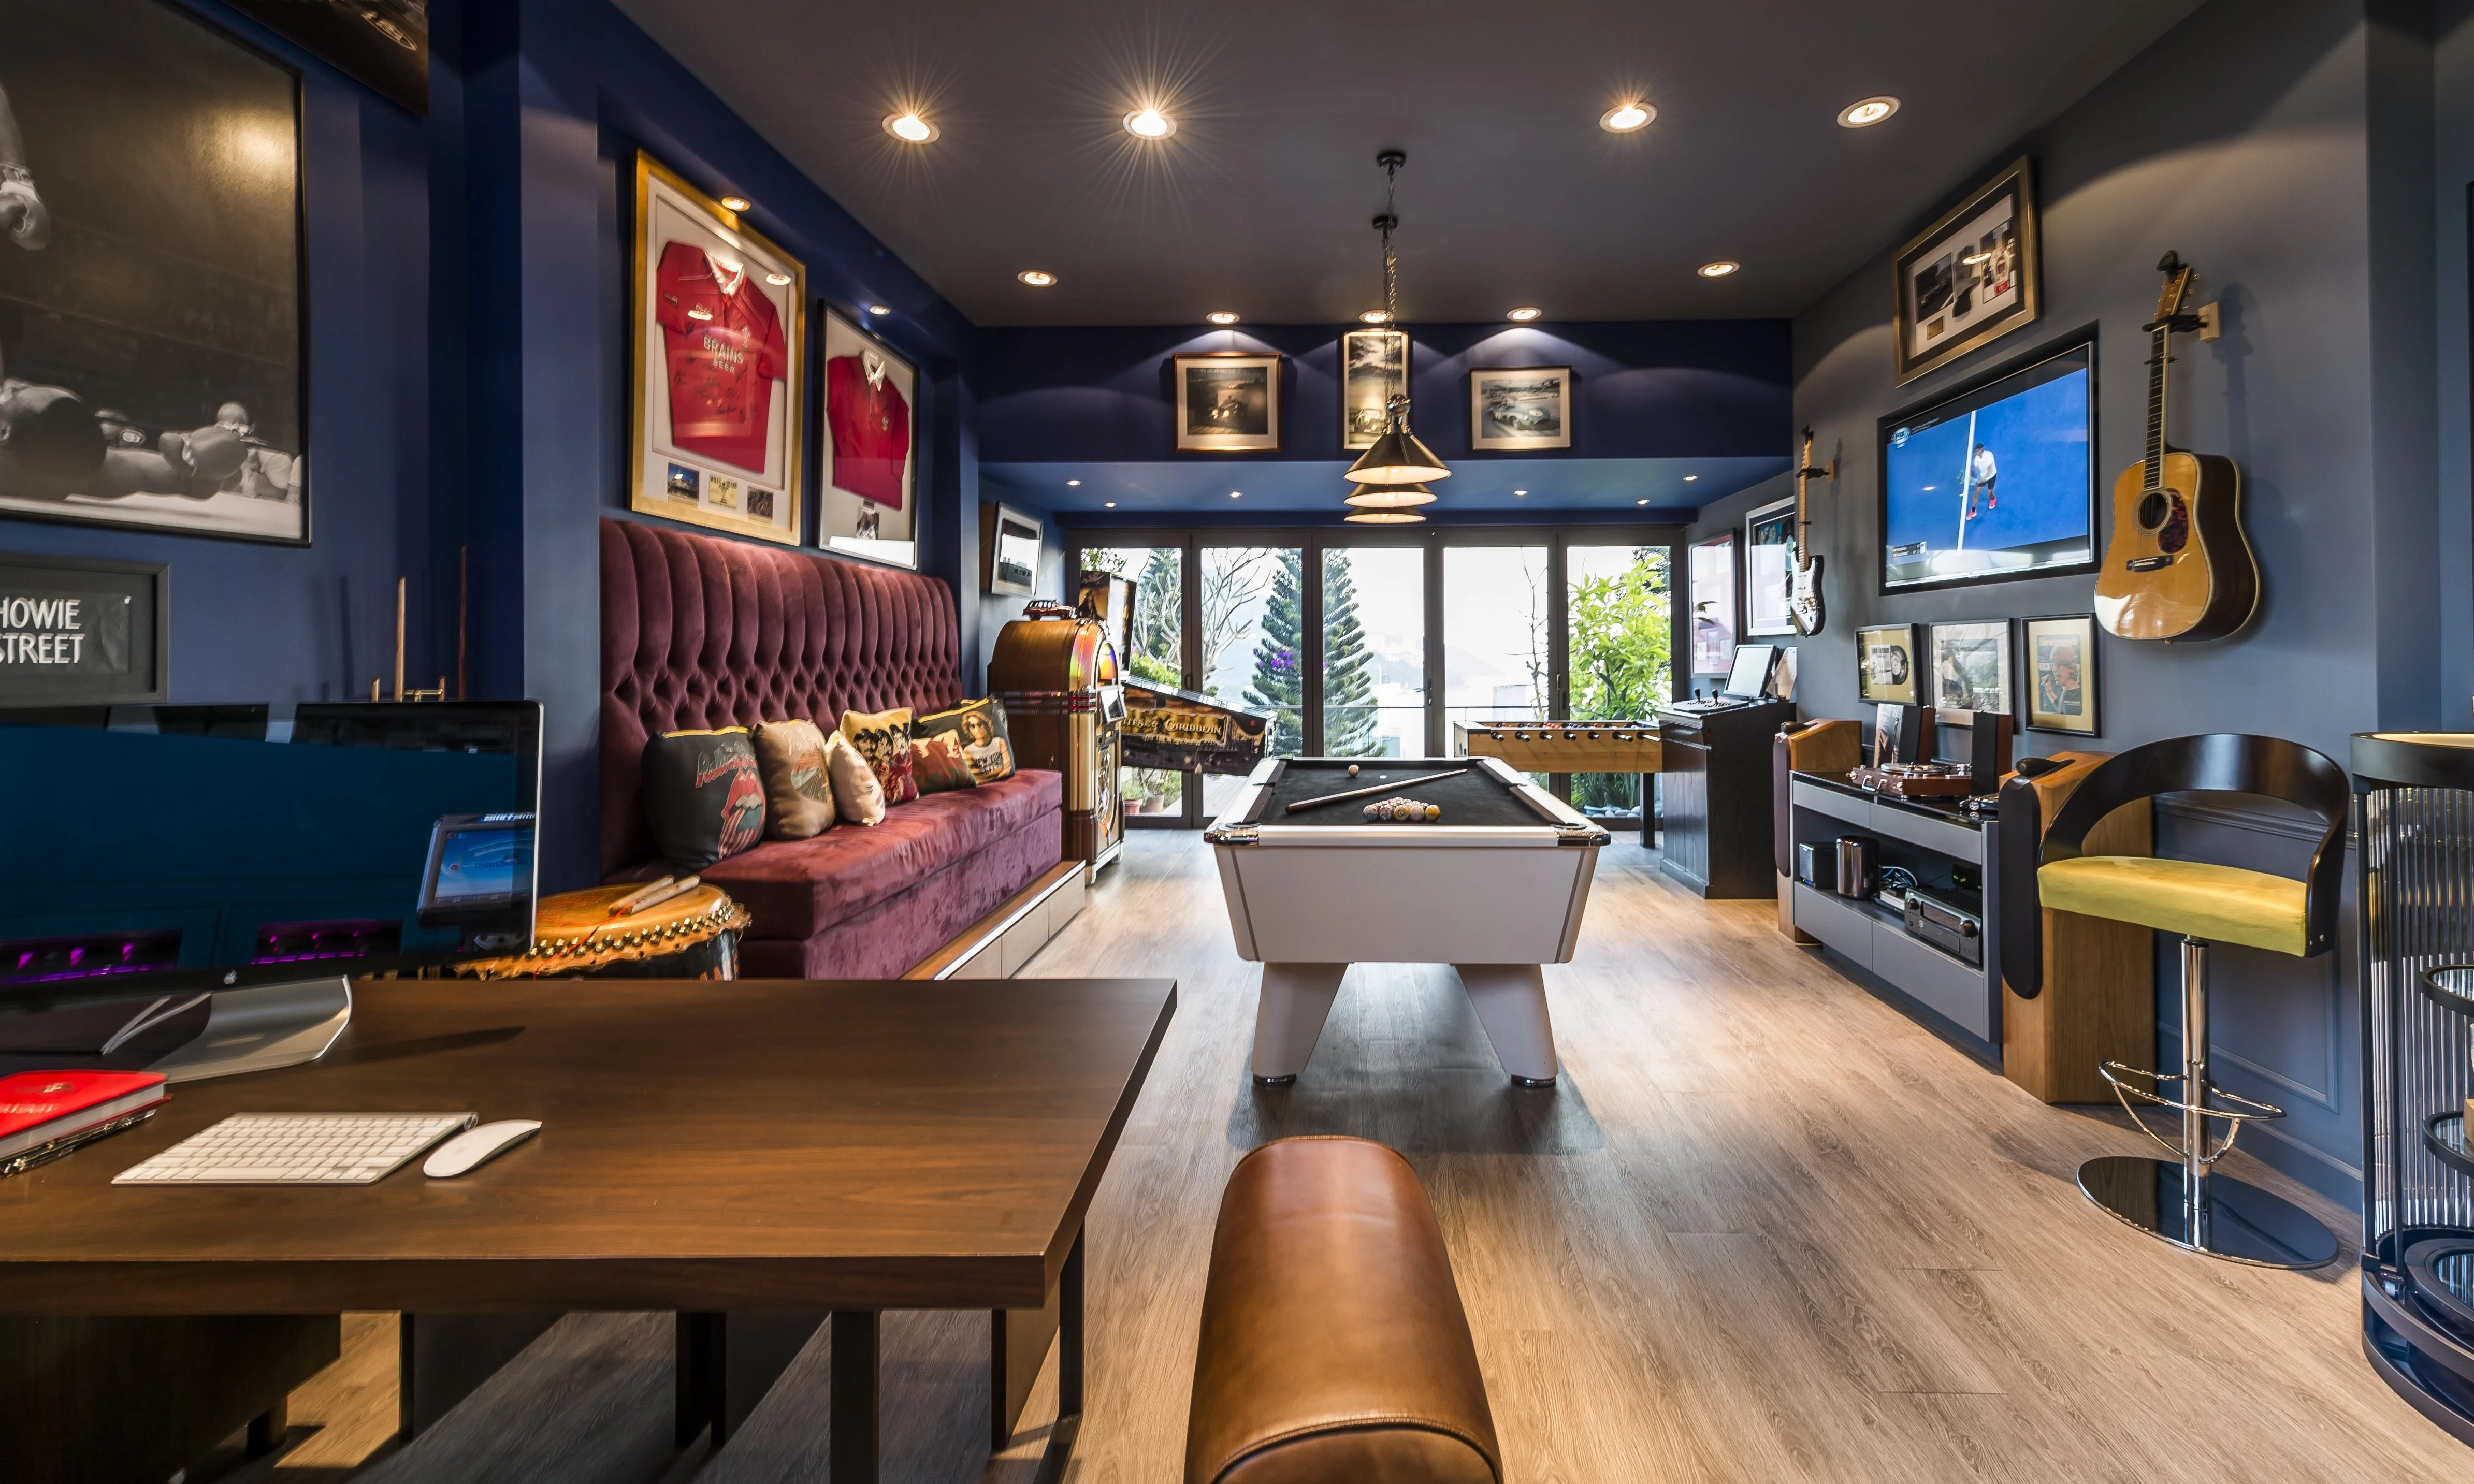 A Hong Kong house with an enviable games room